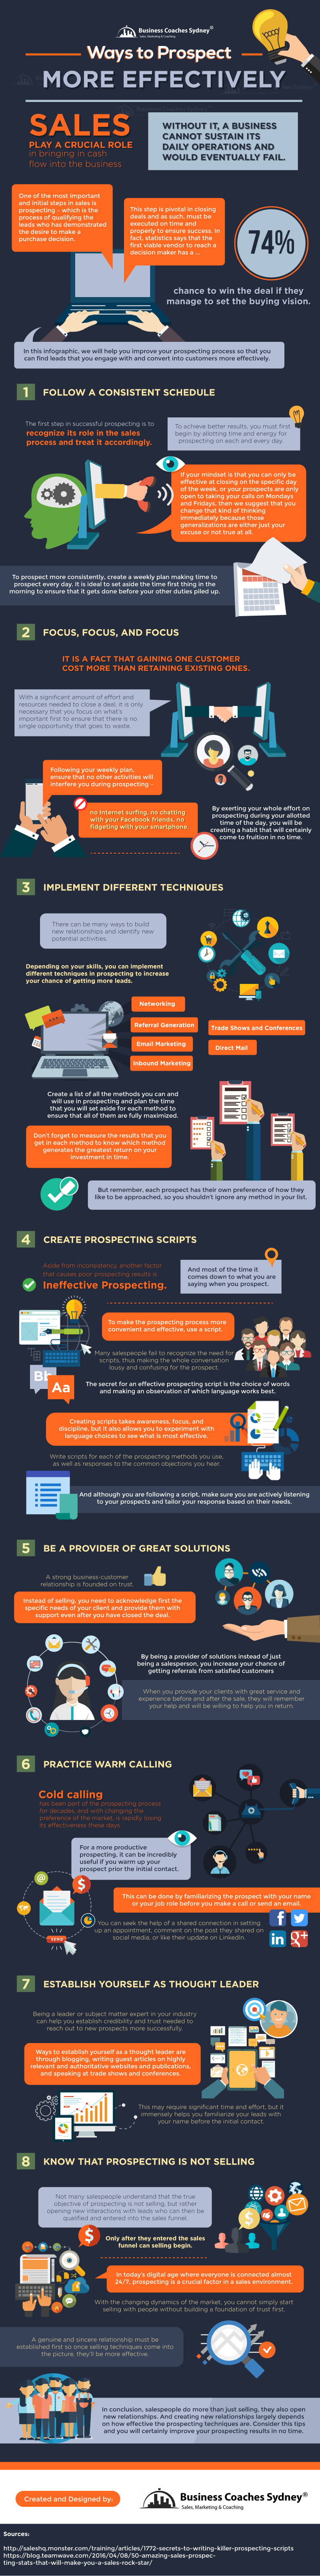 A Guide To Effective Prospecting - Infographic